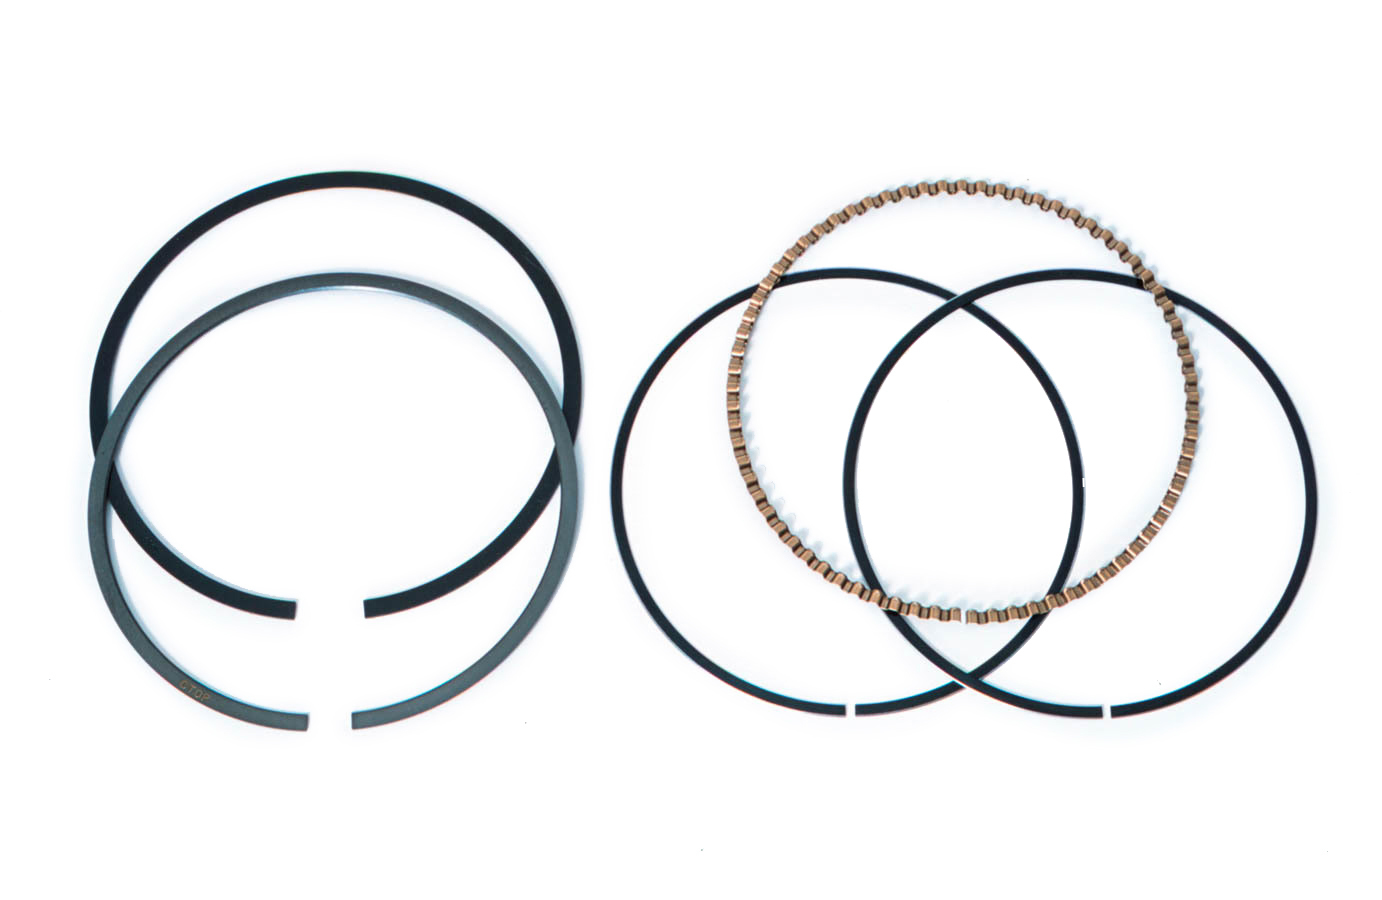 Mahle Pistons 4160MS-112-1 Piston Rings, 4.155 in Bore, File Fit, 1.0 x 1.0 x 2.0 mm Thick, Standard Tension, Steel, Each